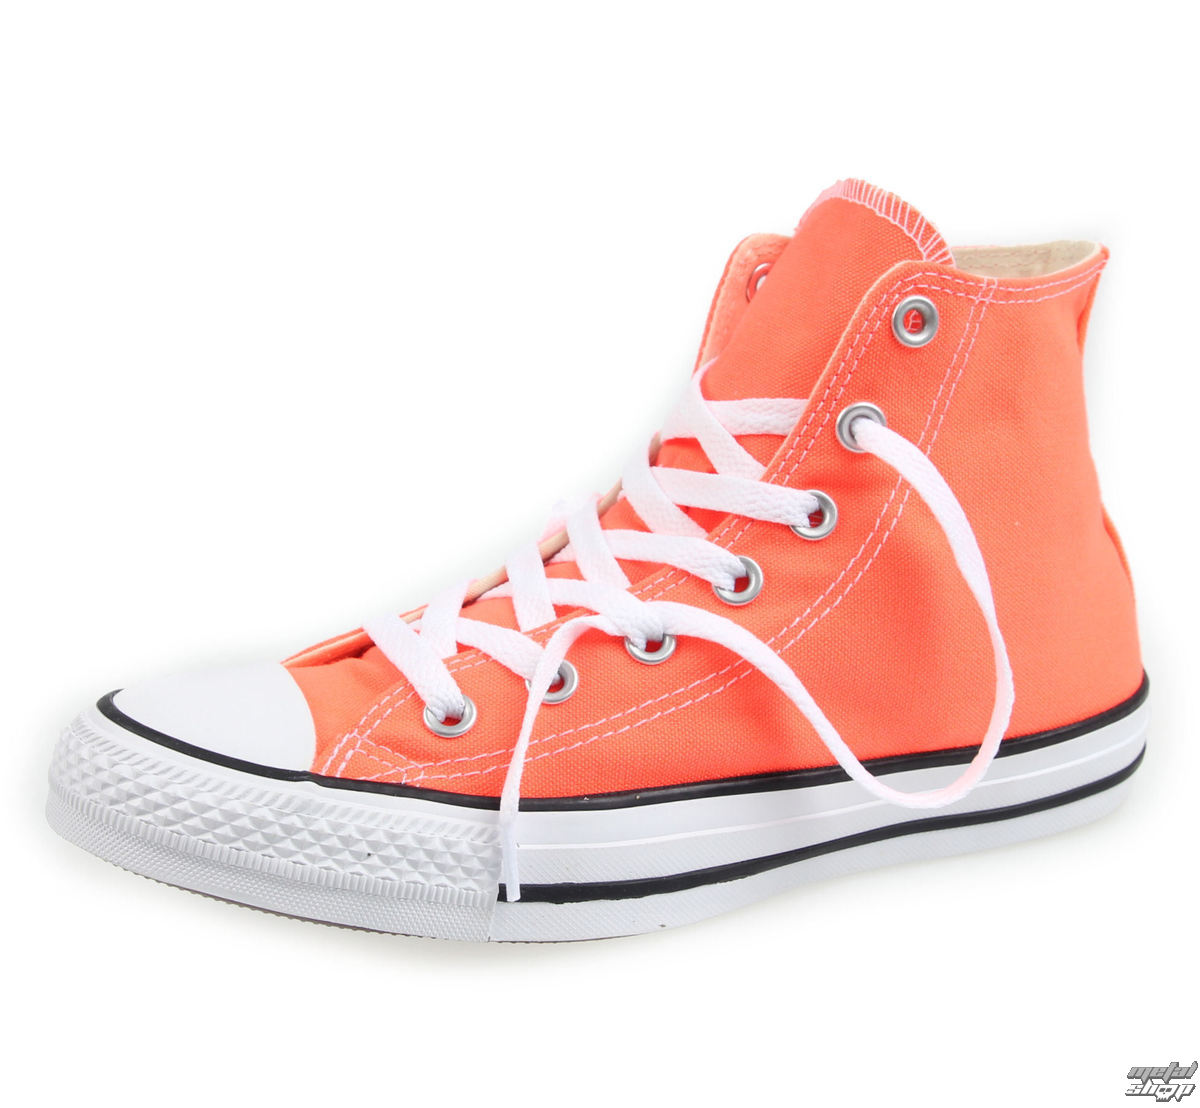 boty CONVERSE - Chuck Taylor All Star - C155739